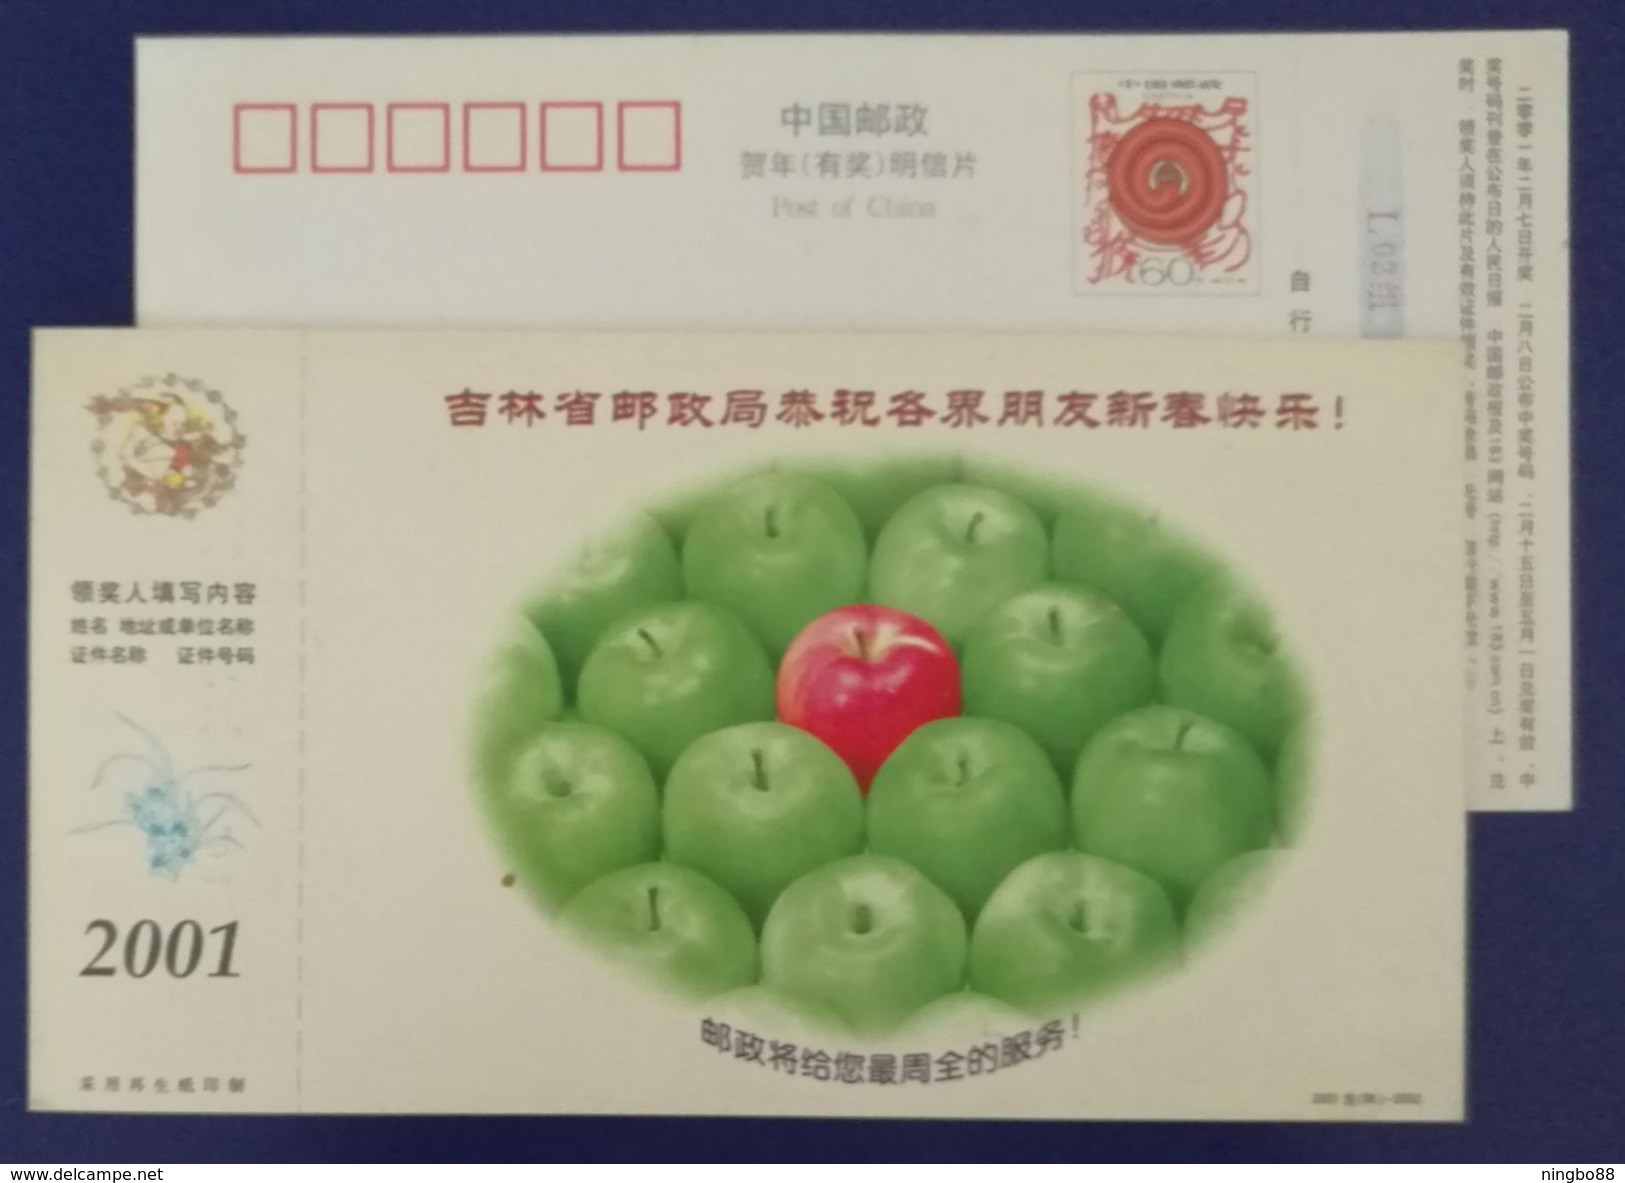 Green Apple Red Apple,China 2001 Jilin Post Office New Year Greeting Advertising Pre-stamped Card - Fruits